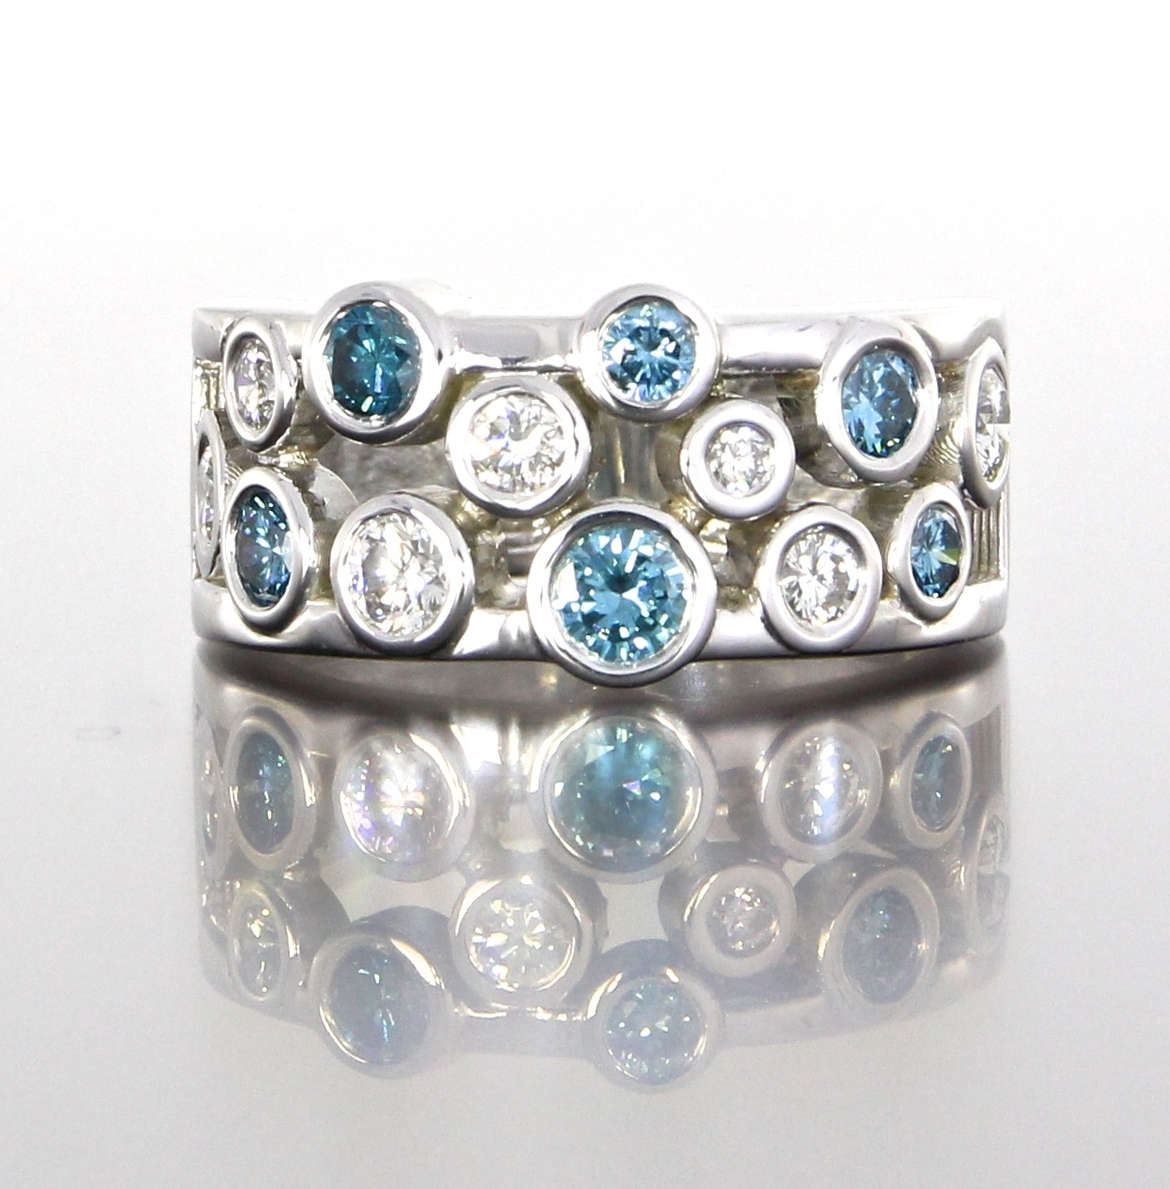 top-view-unique-diamond-blue-diamond-band-womens-wedding-white-gold-craft-revival-jewelry-store-grand-rapids